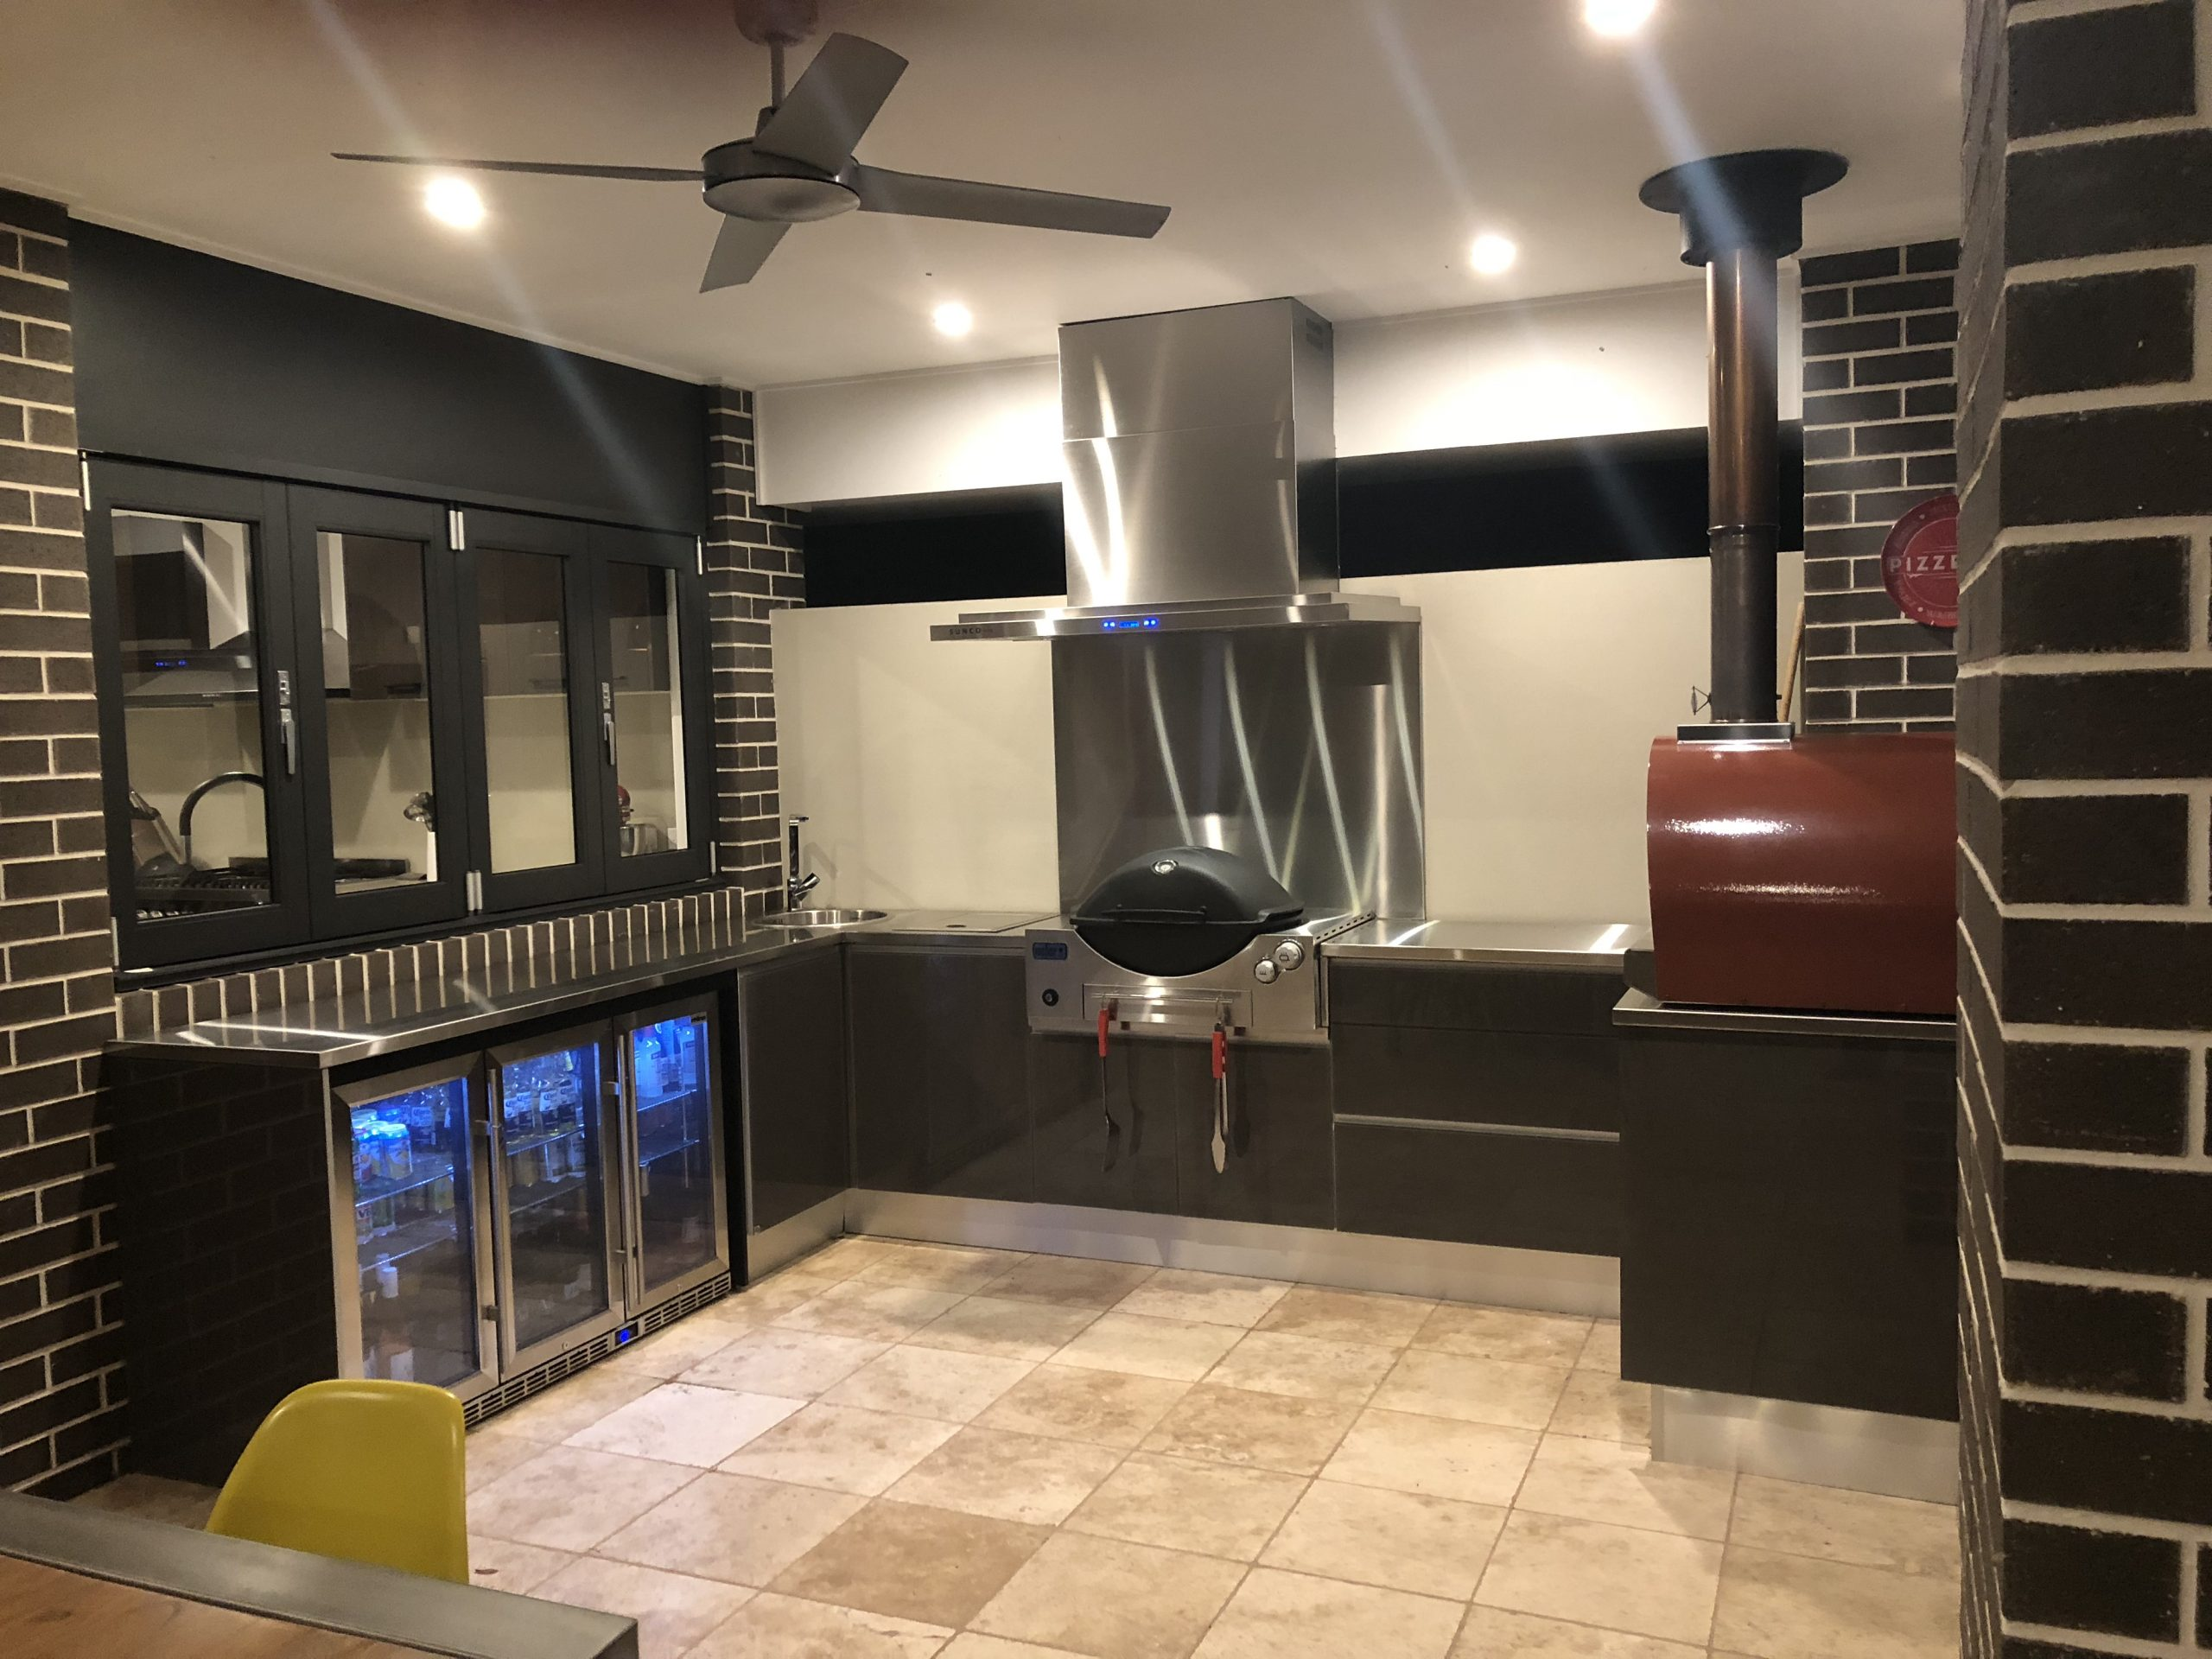 DOMESTIC-STAINLESS-STEEL-FABRICATION-KITCHEN